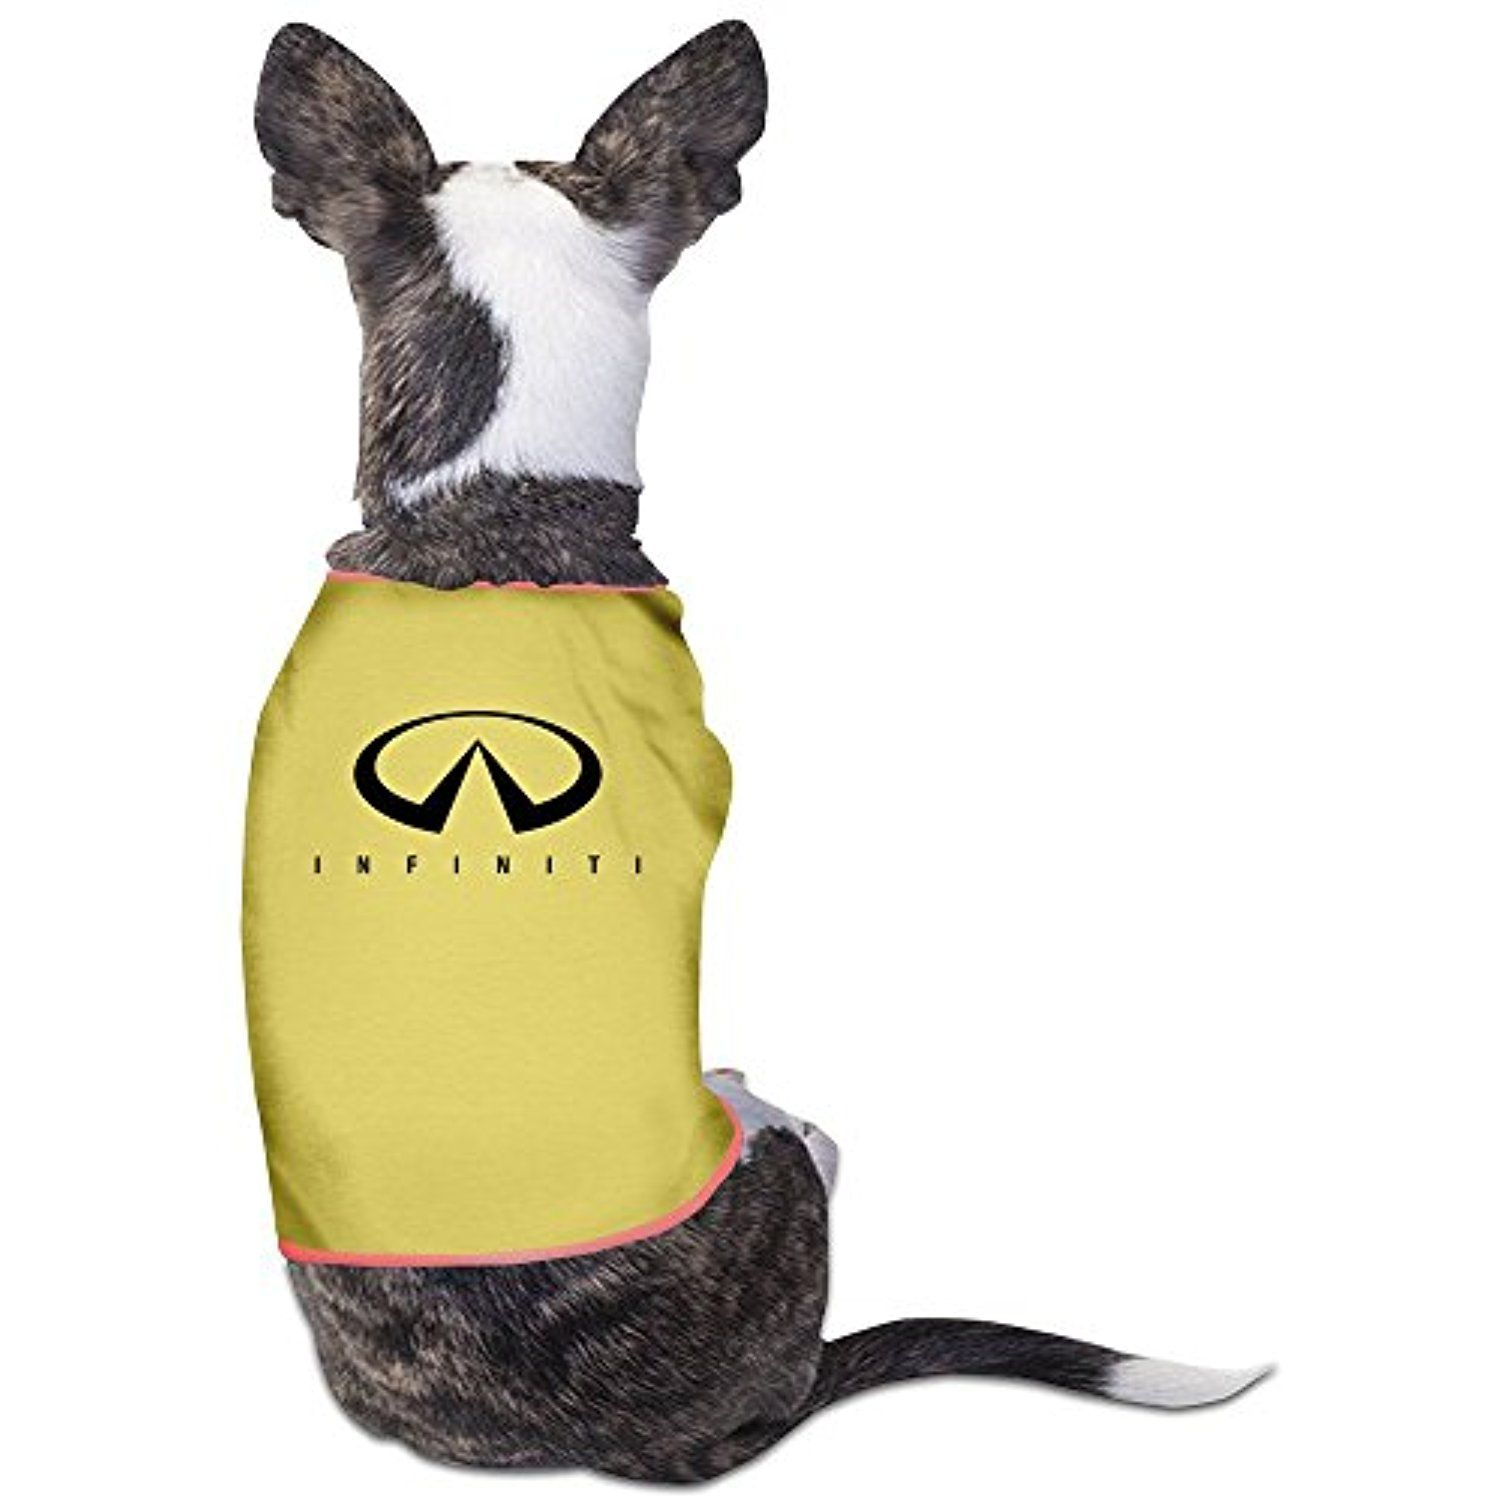 Size small dog clothing Ice cream dress size small size dog clothes